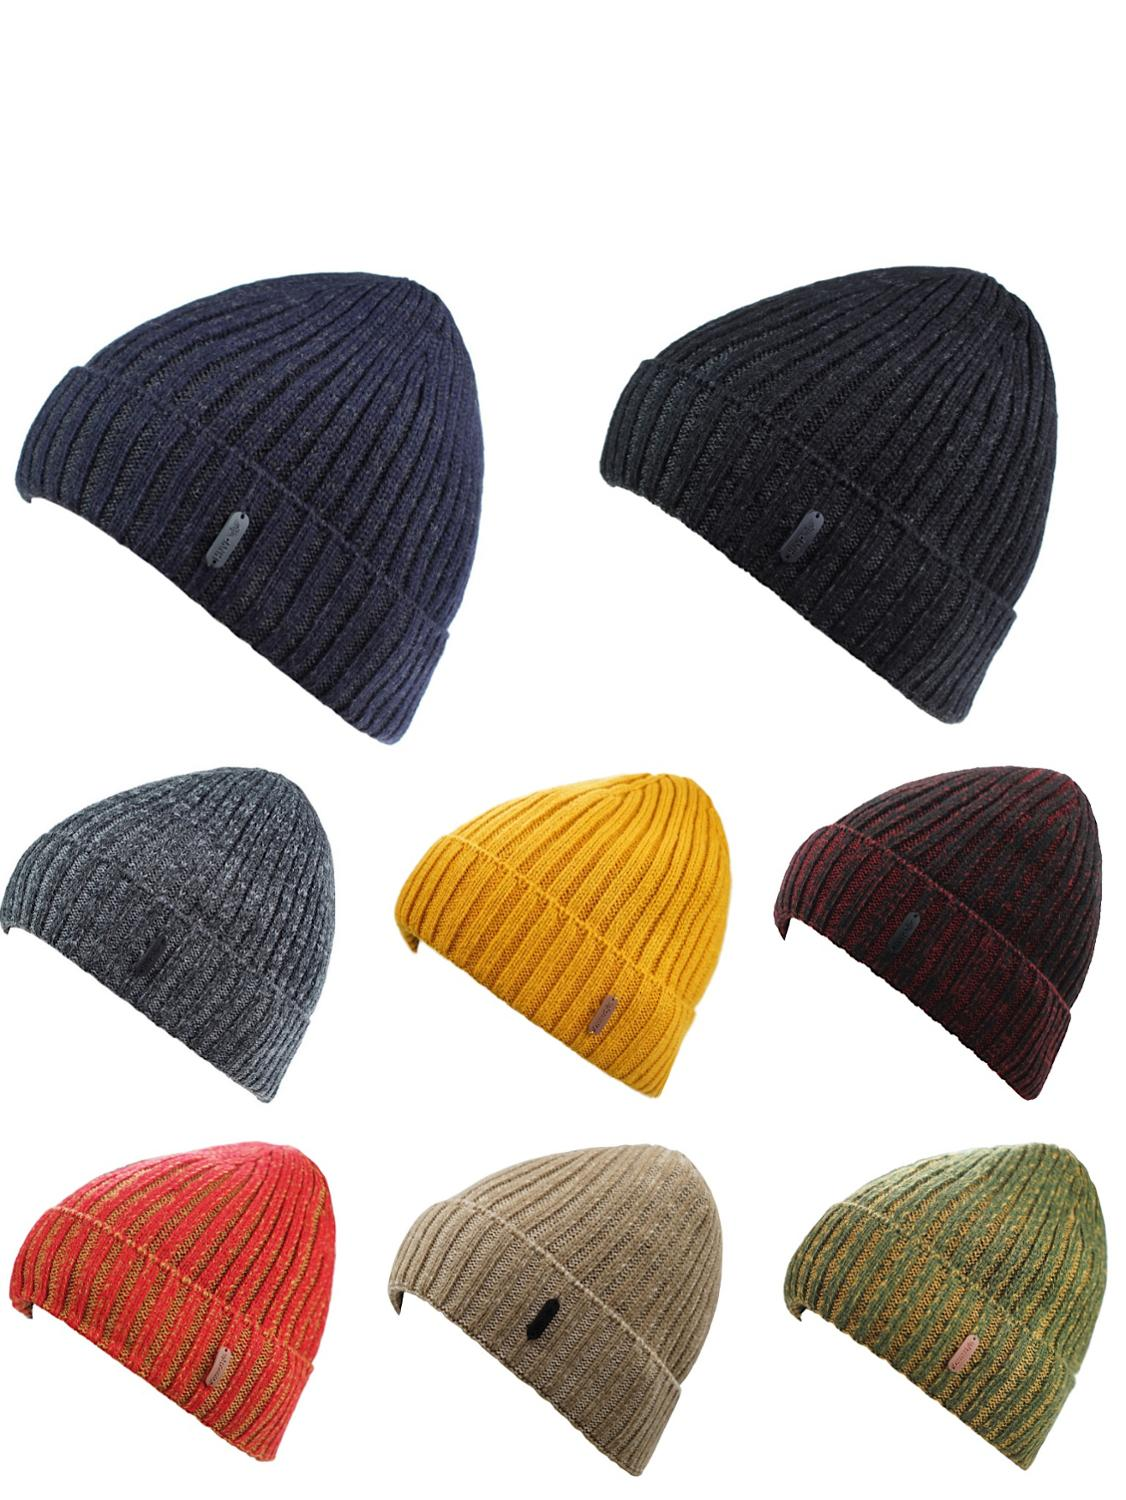 Connectyle Classic Fashion Men's Warm Winter Hats Thick Rib Knit Cable Cuff Beanie Watch Cap With Fleece Lining Skull Cap